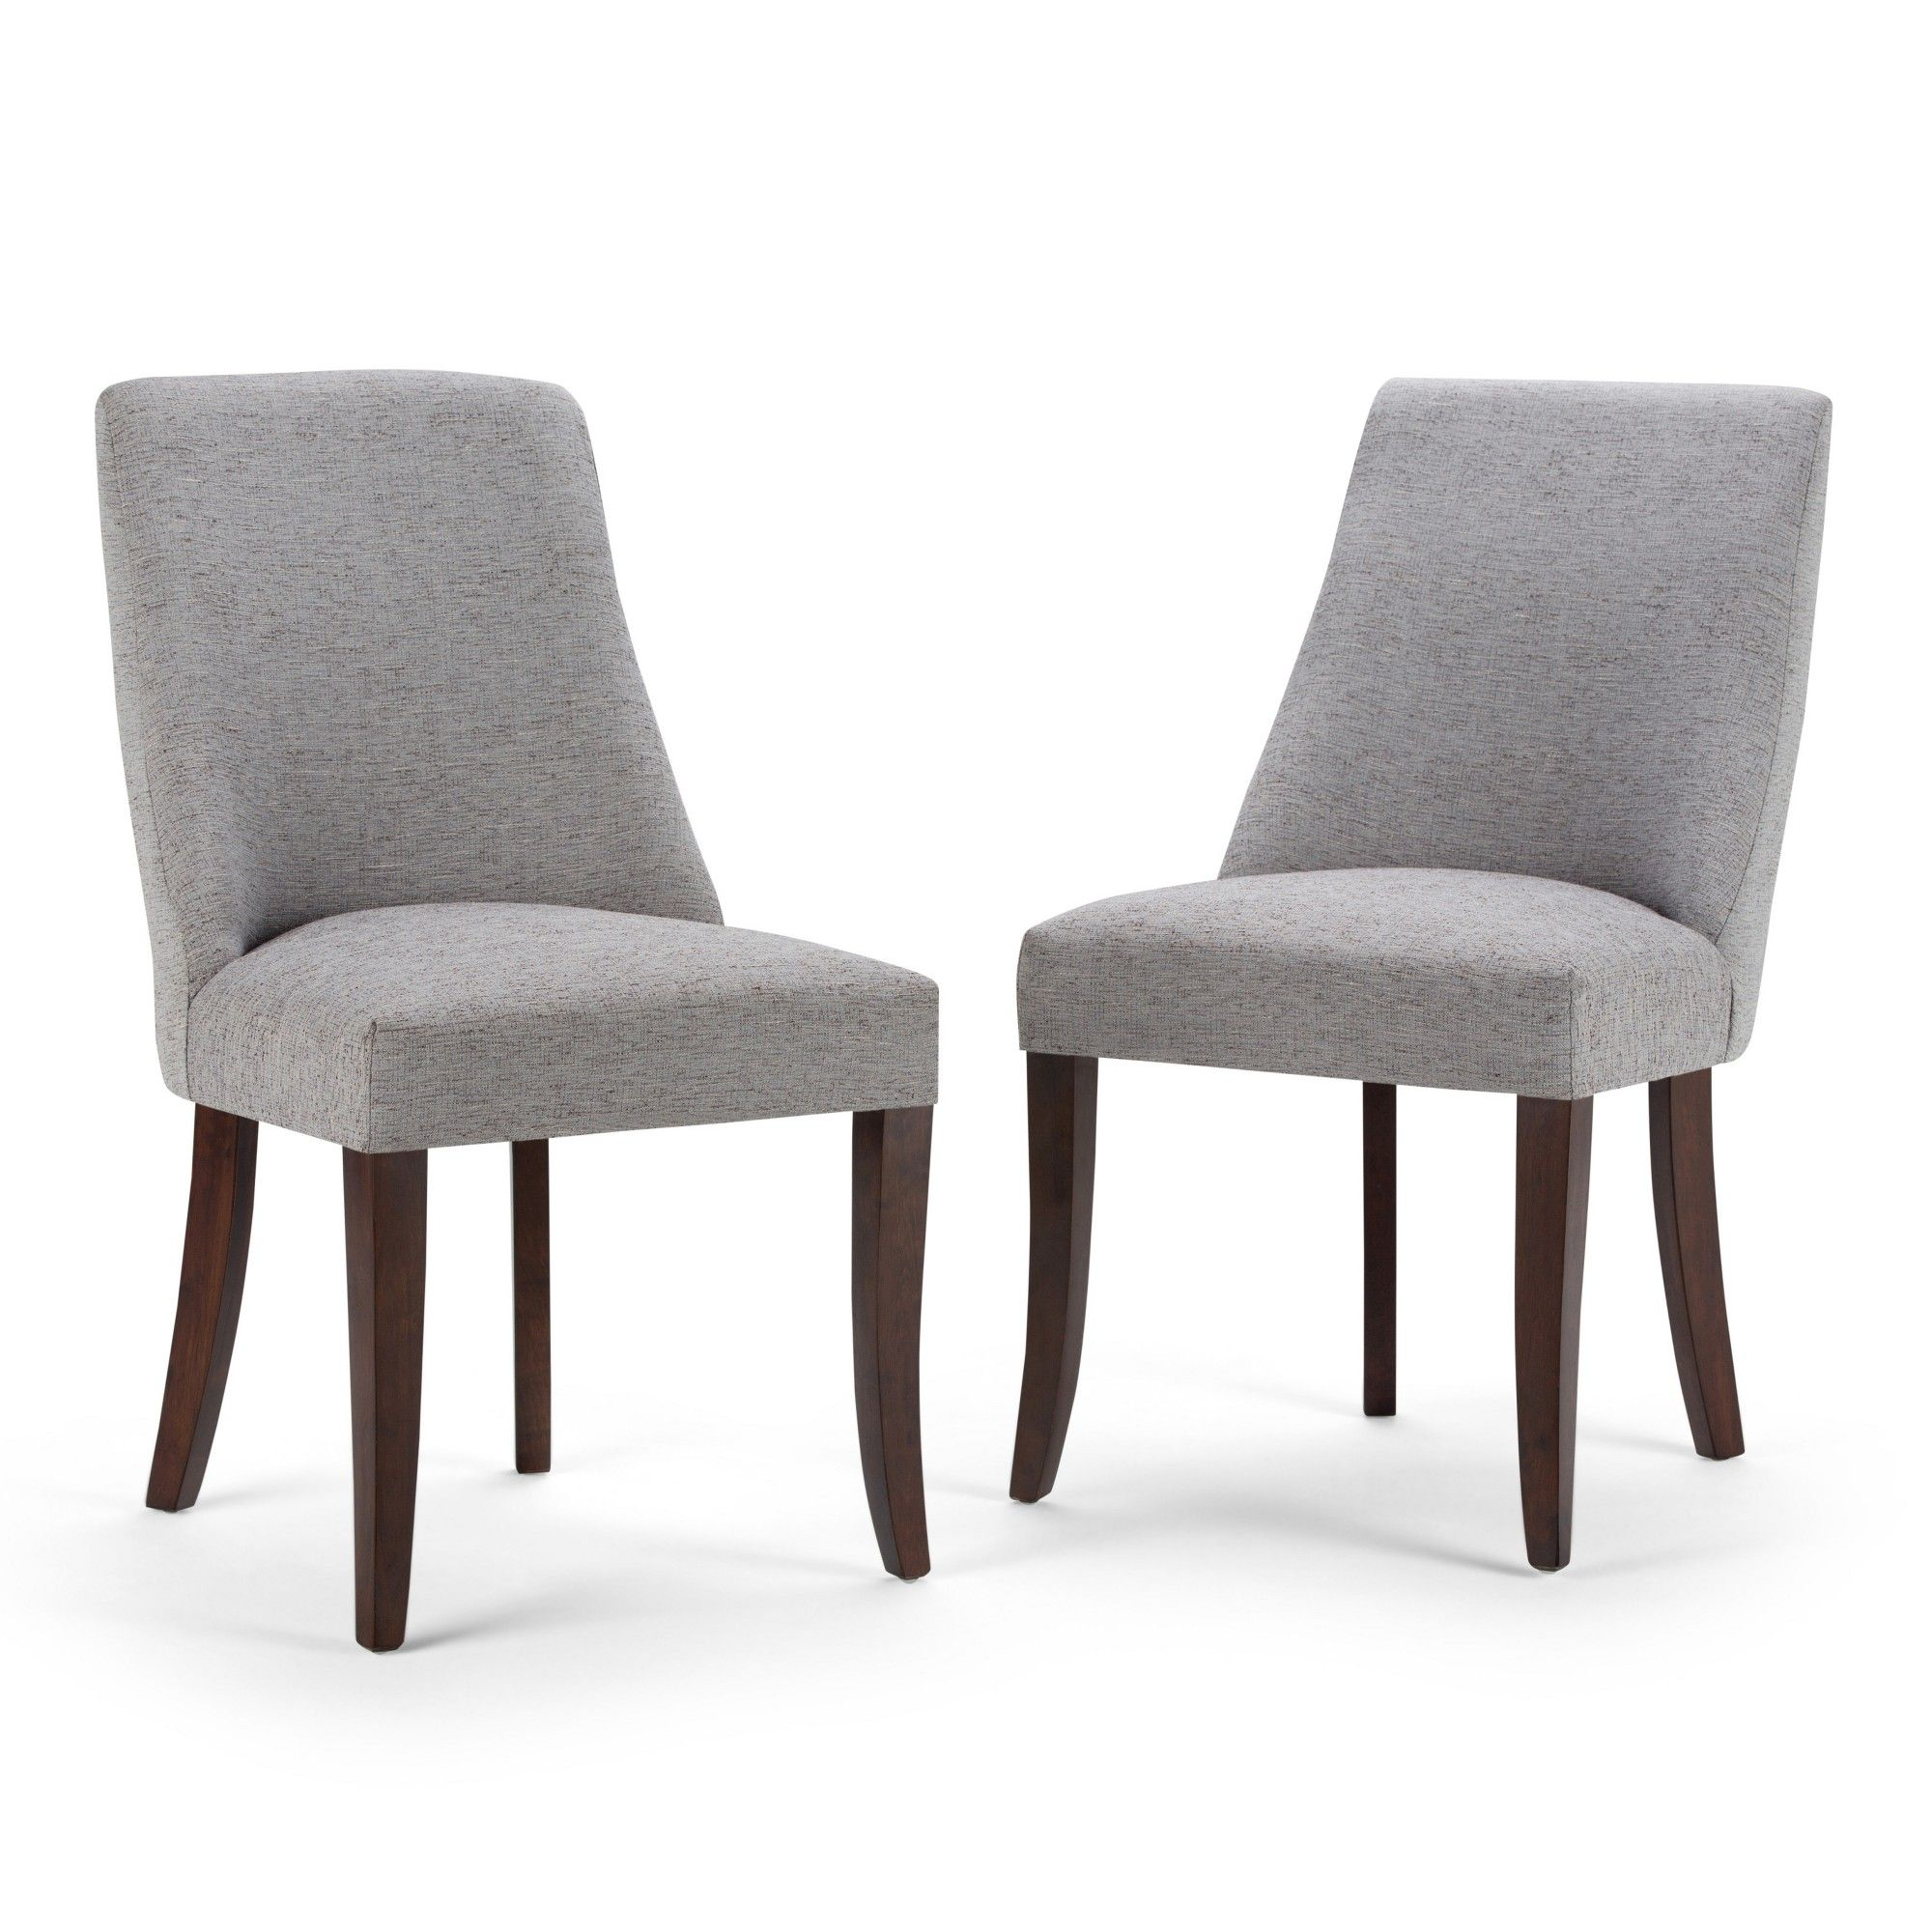 Haley Deluxe Dining Chair Set Of 2 Gray Linen Look Fabric